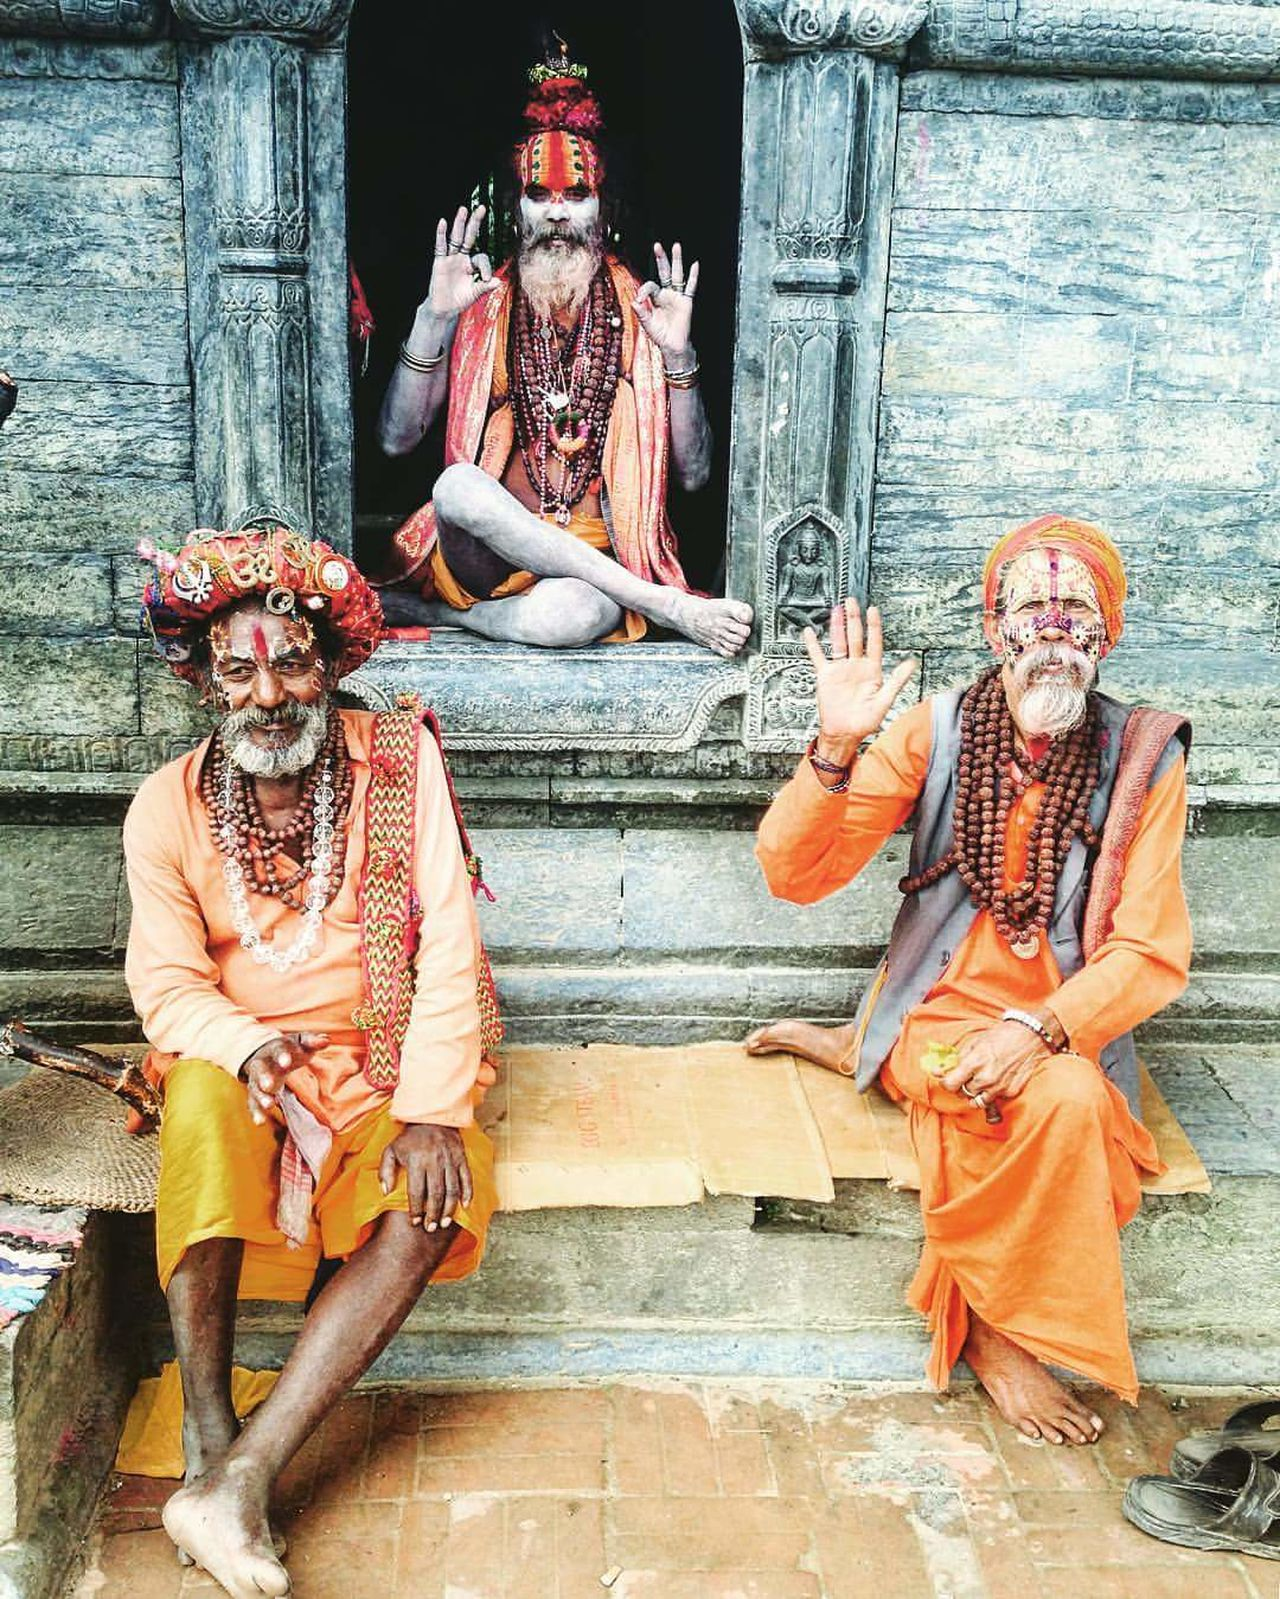 Uniqueness Outdoors Cultures People Human Hand Day Nepal Nepal Travel Nepali Culture Nepalipeople😊 Travel Travel Destinations Kathmandu Kathmandu Valley Pashupatinath Pashupatinath Temple EyeEmNewHere Miles Away